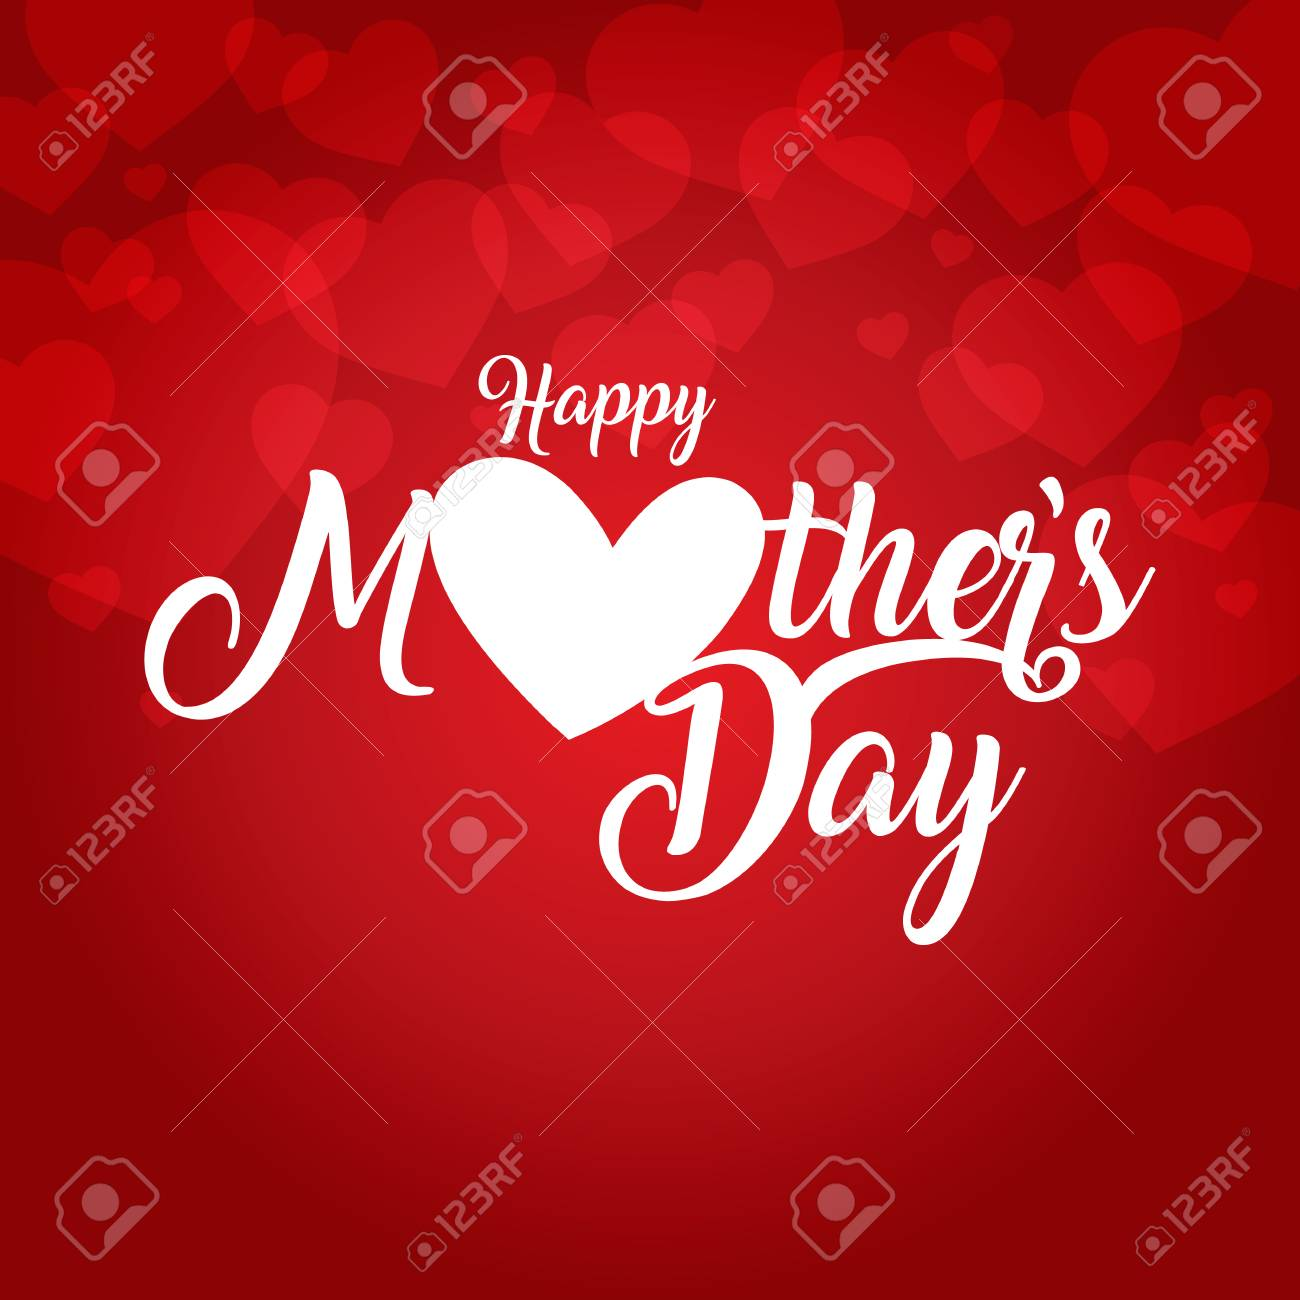 Mothers Day Greeting Card Vector Illustration With Hearts Design